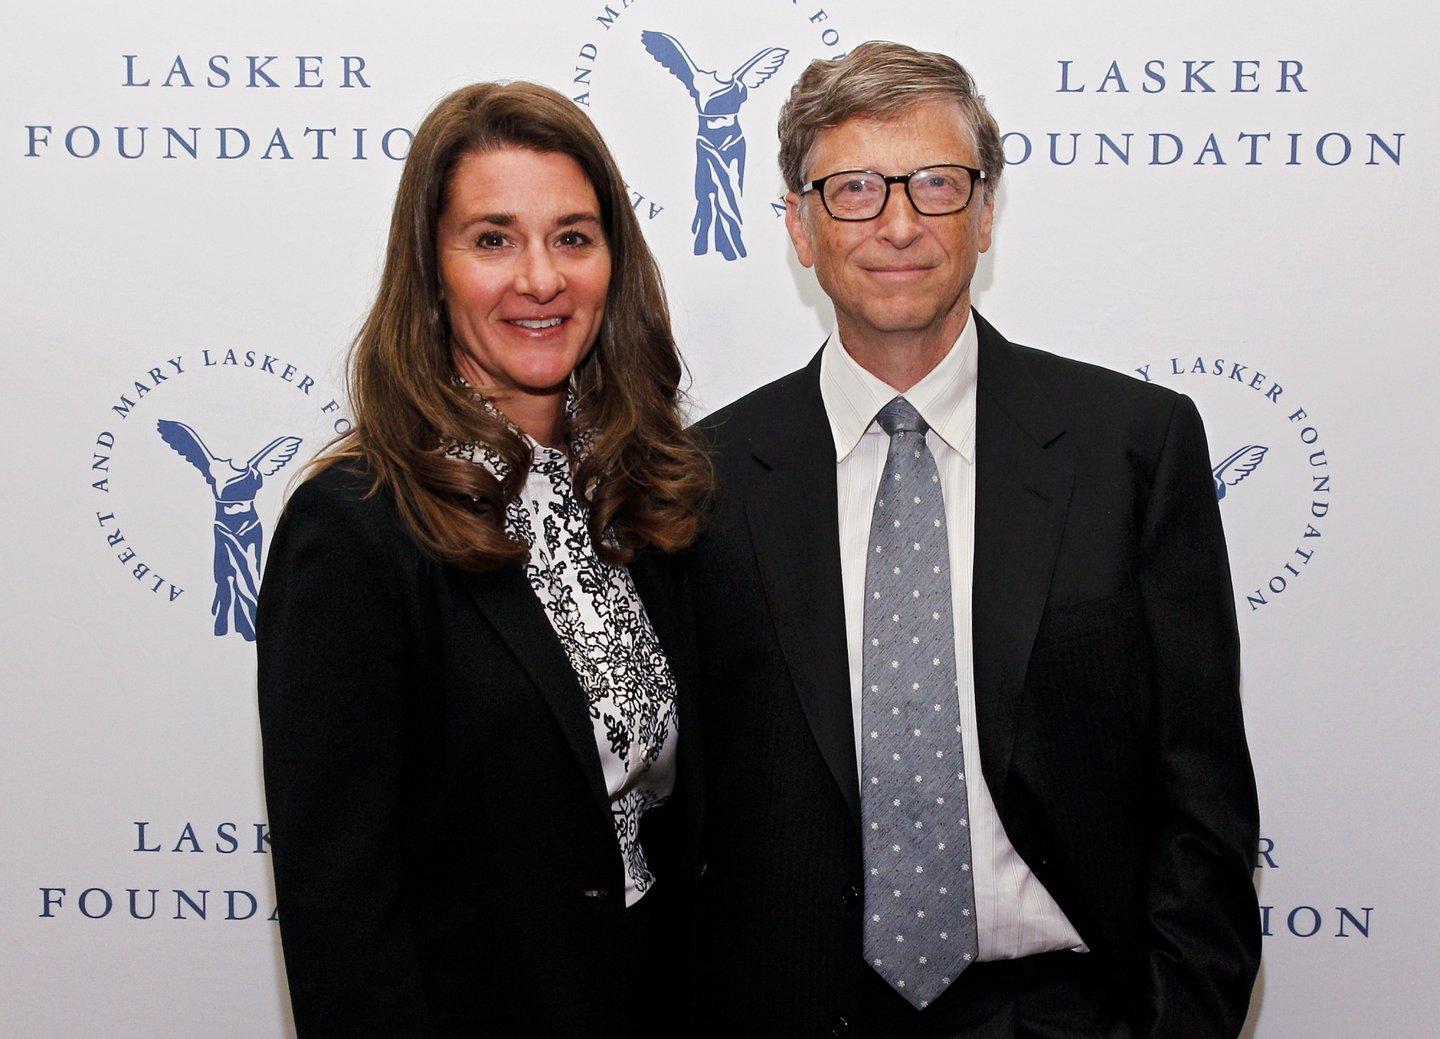 NEW YORK, NY - SEPTEMBER 20: Melinda Gates and Bill Gates of the Gates Foundation, winners of the Public Service Award, are seen during the The Lasker Awards 2013 on September 20, 2013 in New York City. (Photo by Brian Ach/Getty Images for The Lasker Foundation)